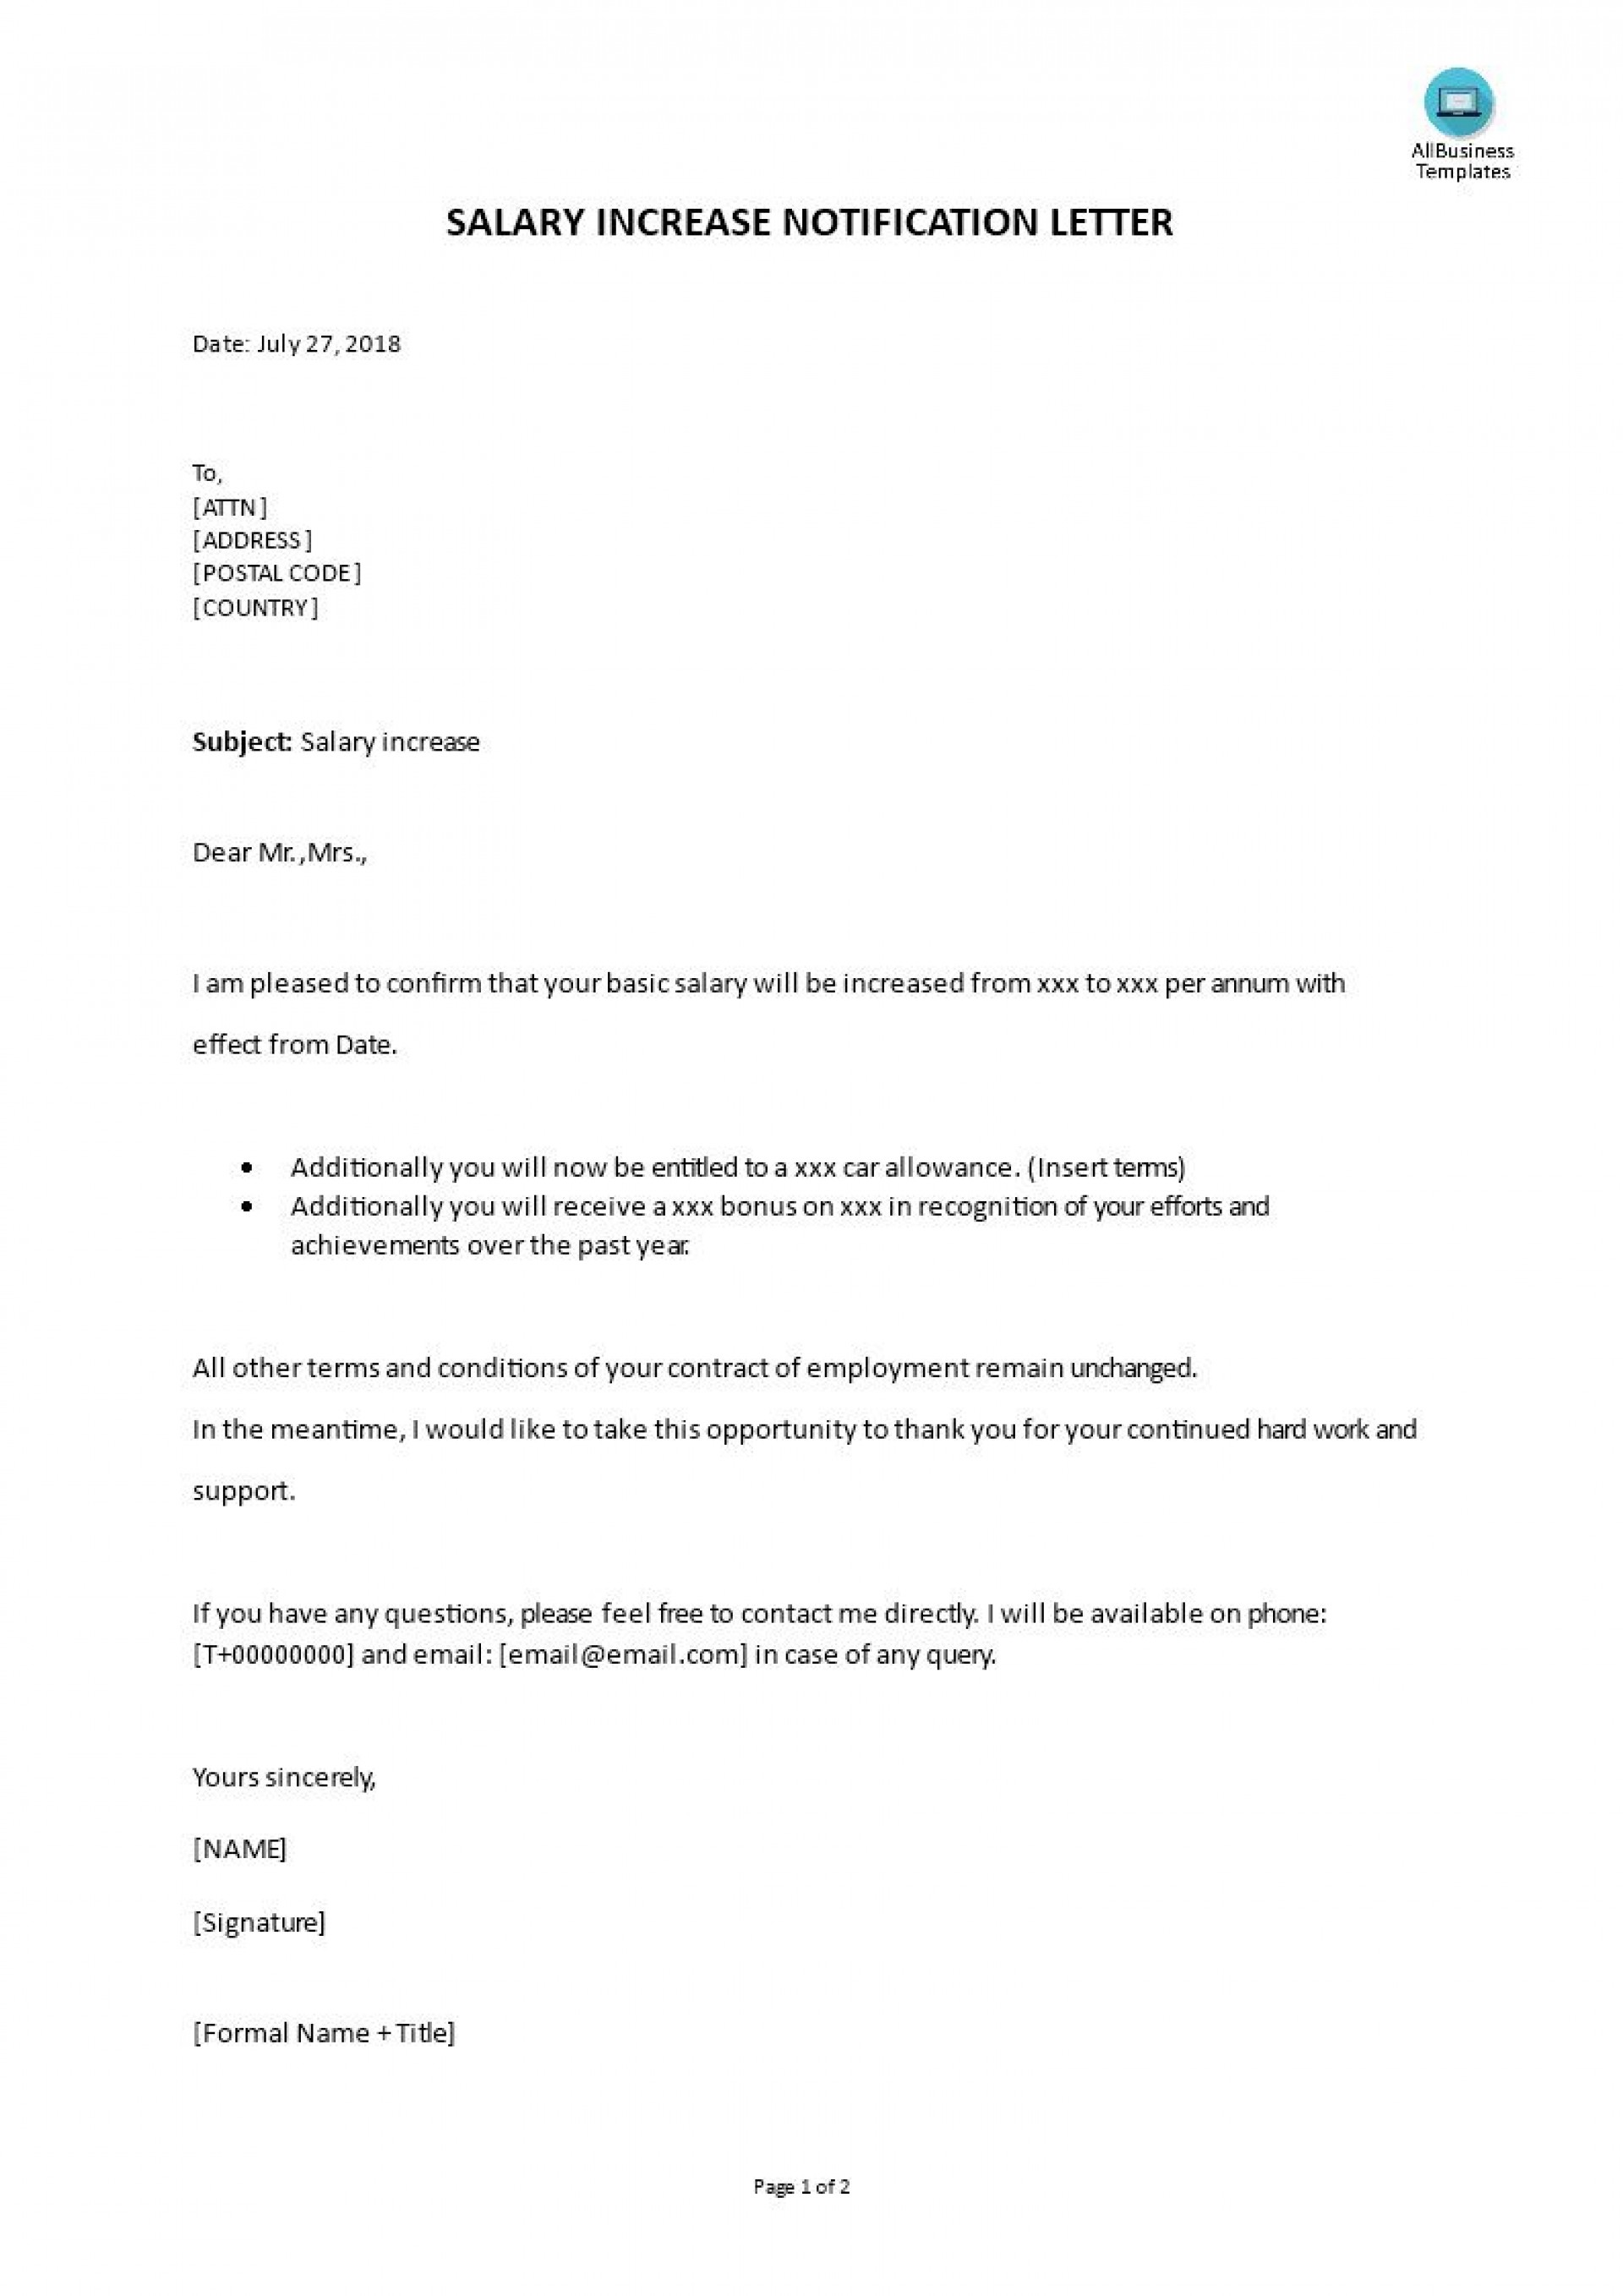 001 Wonderful Salary Increase Letter Template High Resolution  From Employer To Employee Australia No For1920